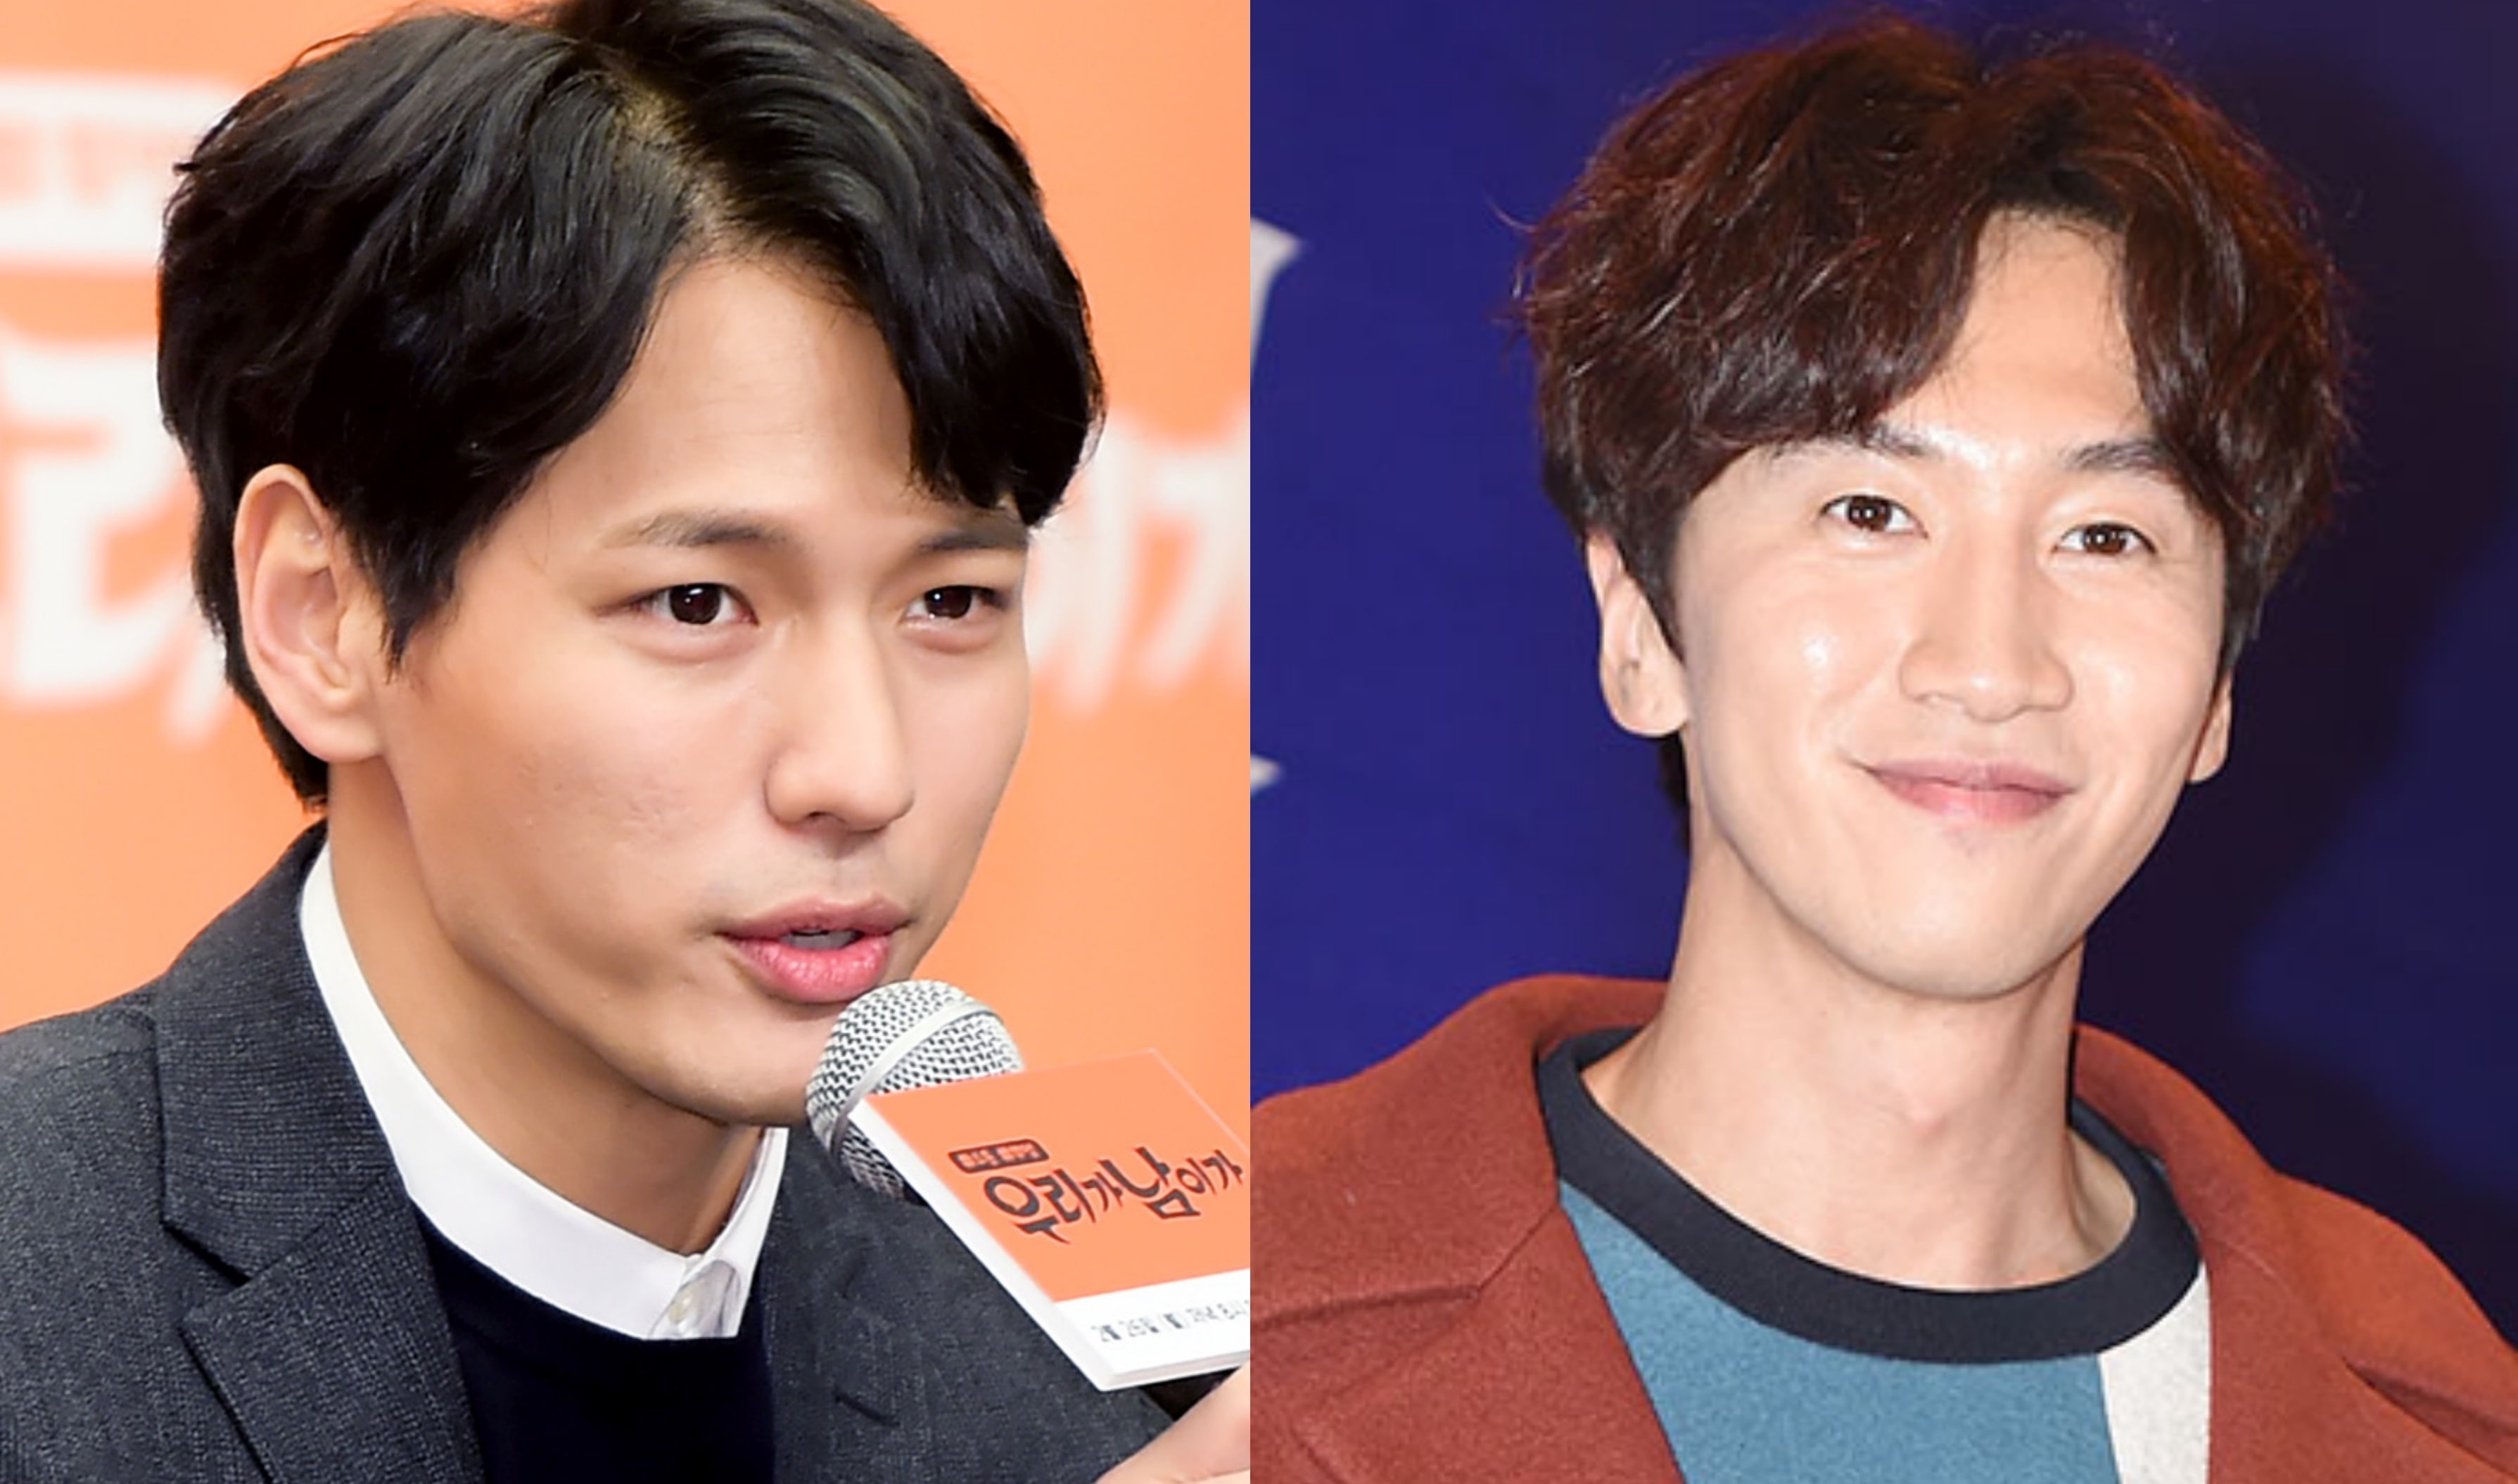 Ji Il Joo Says He'd Like To Apologize To His Friend Lee Kwang Soo For A Past Mistake